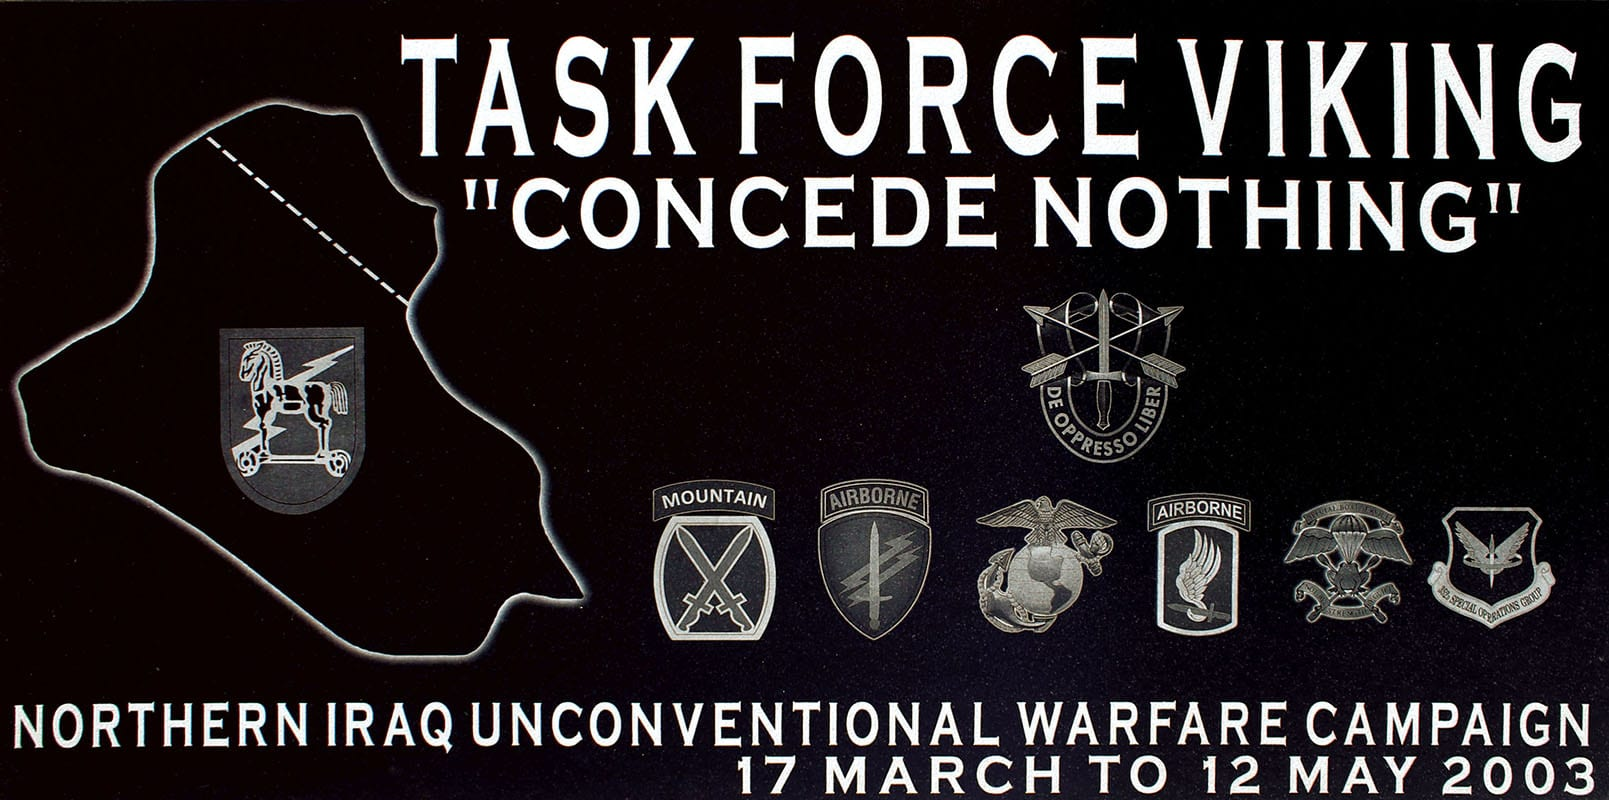 Task Force Viking